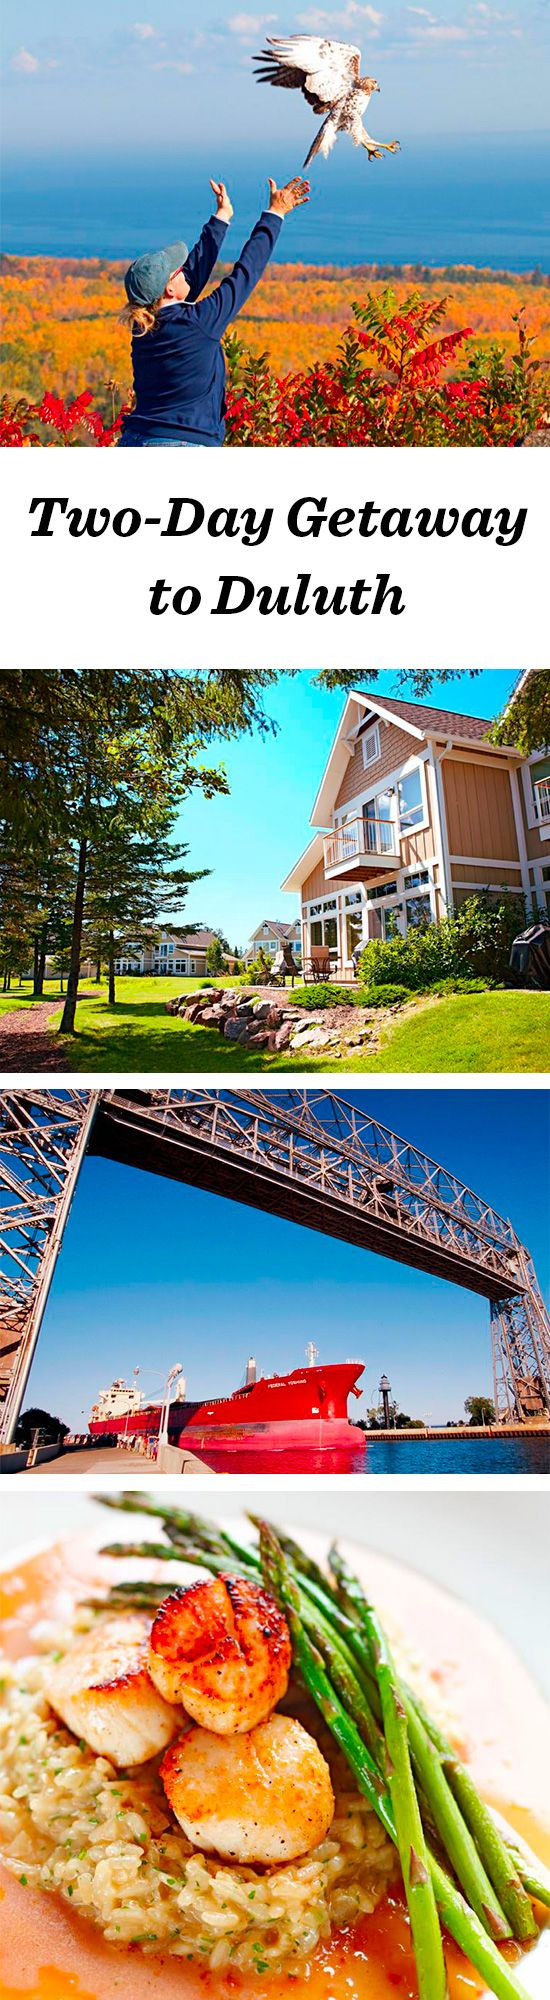 The gateway to the 154-mile-long North Shore Scenic Byway, Duluth stands out with its Canal Park neighborhood, miles of lakeside trails and quality dining: http://www.midwestliving.com/travel/minnesota/duluth/two-day-getaway-to-duluth/ #duluth #minnesota #northshore